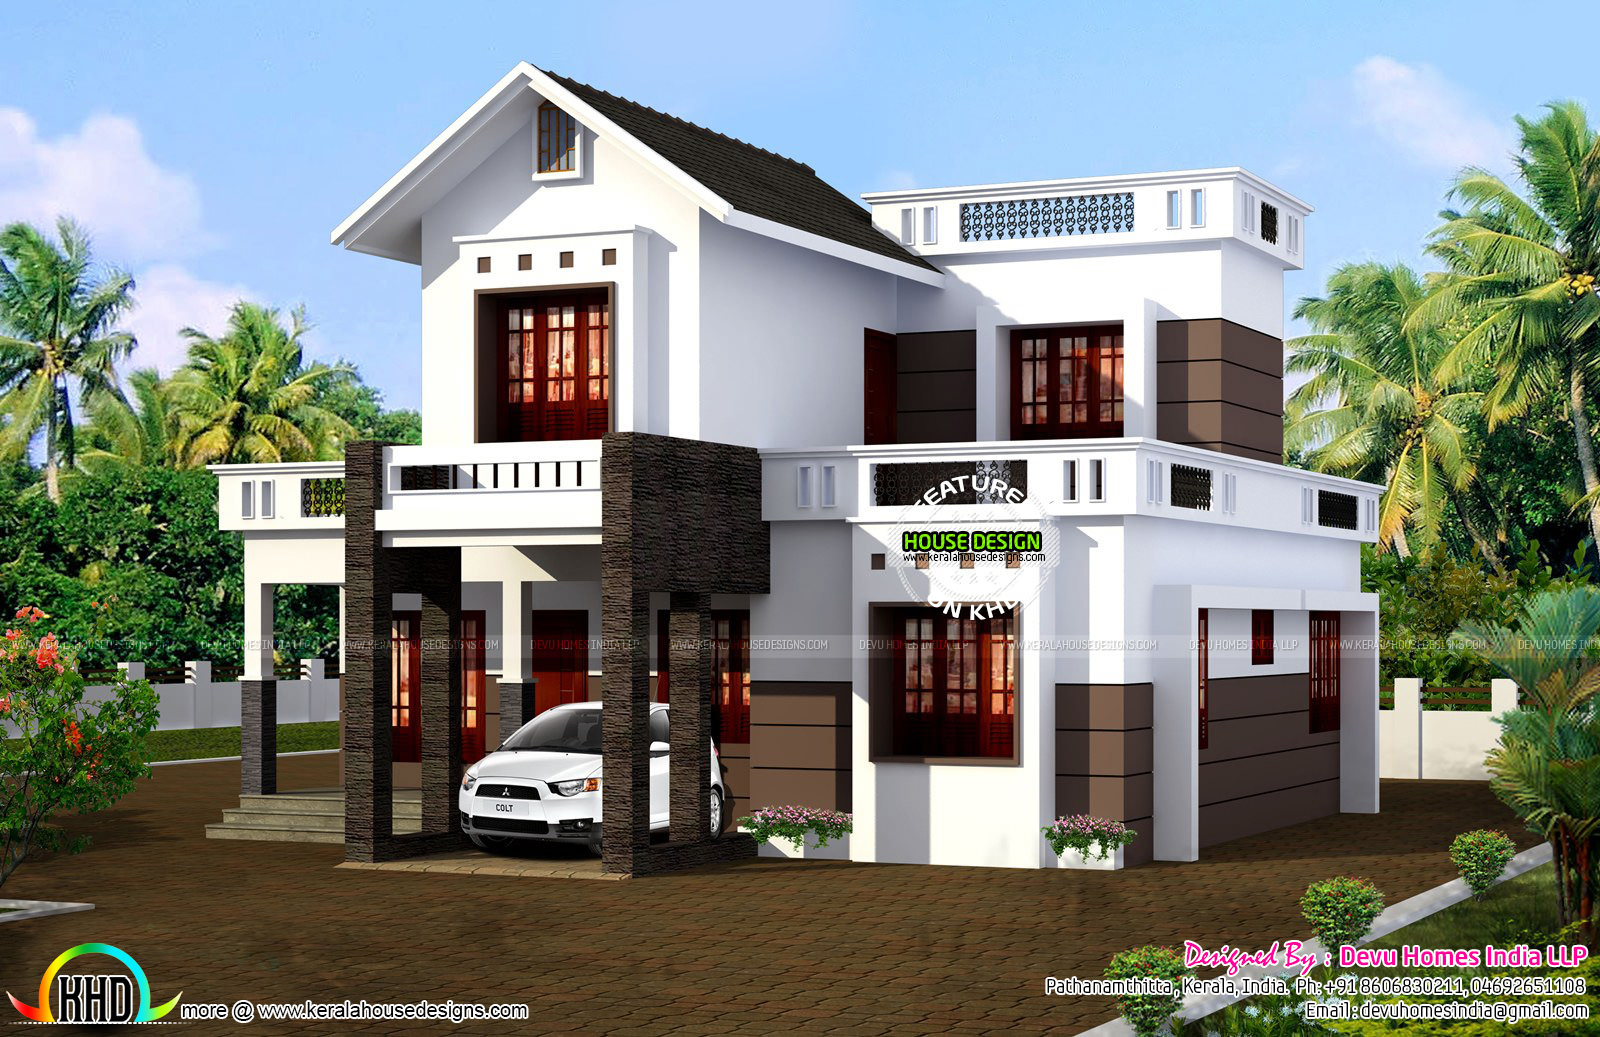 Simple 1524 sq ft house plan kerala home design and for Simple but modern house design